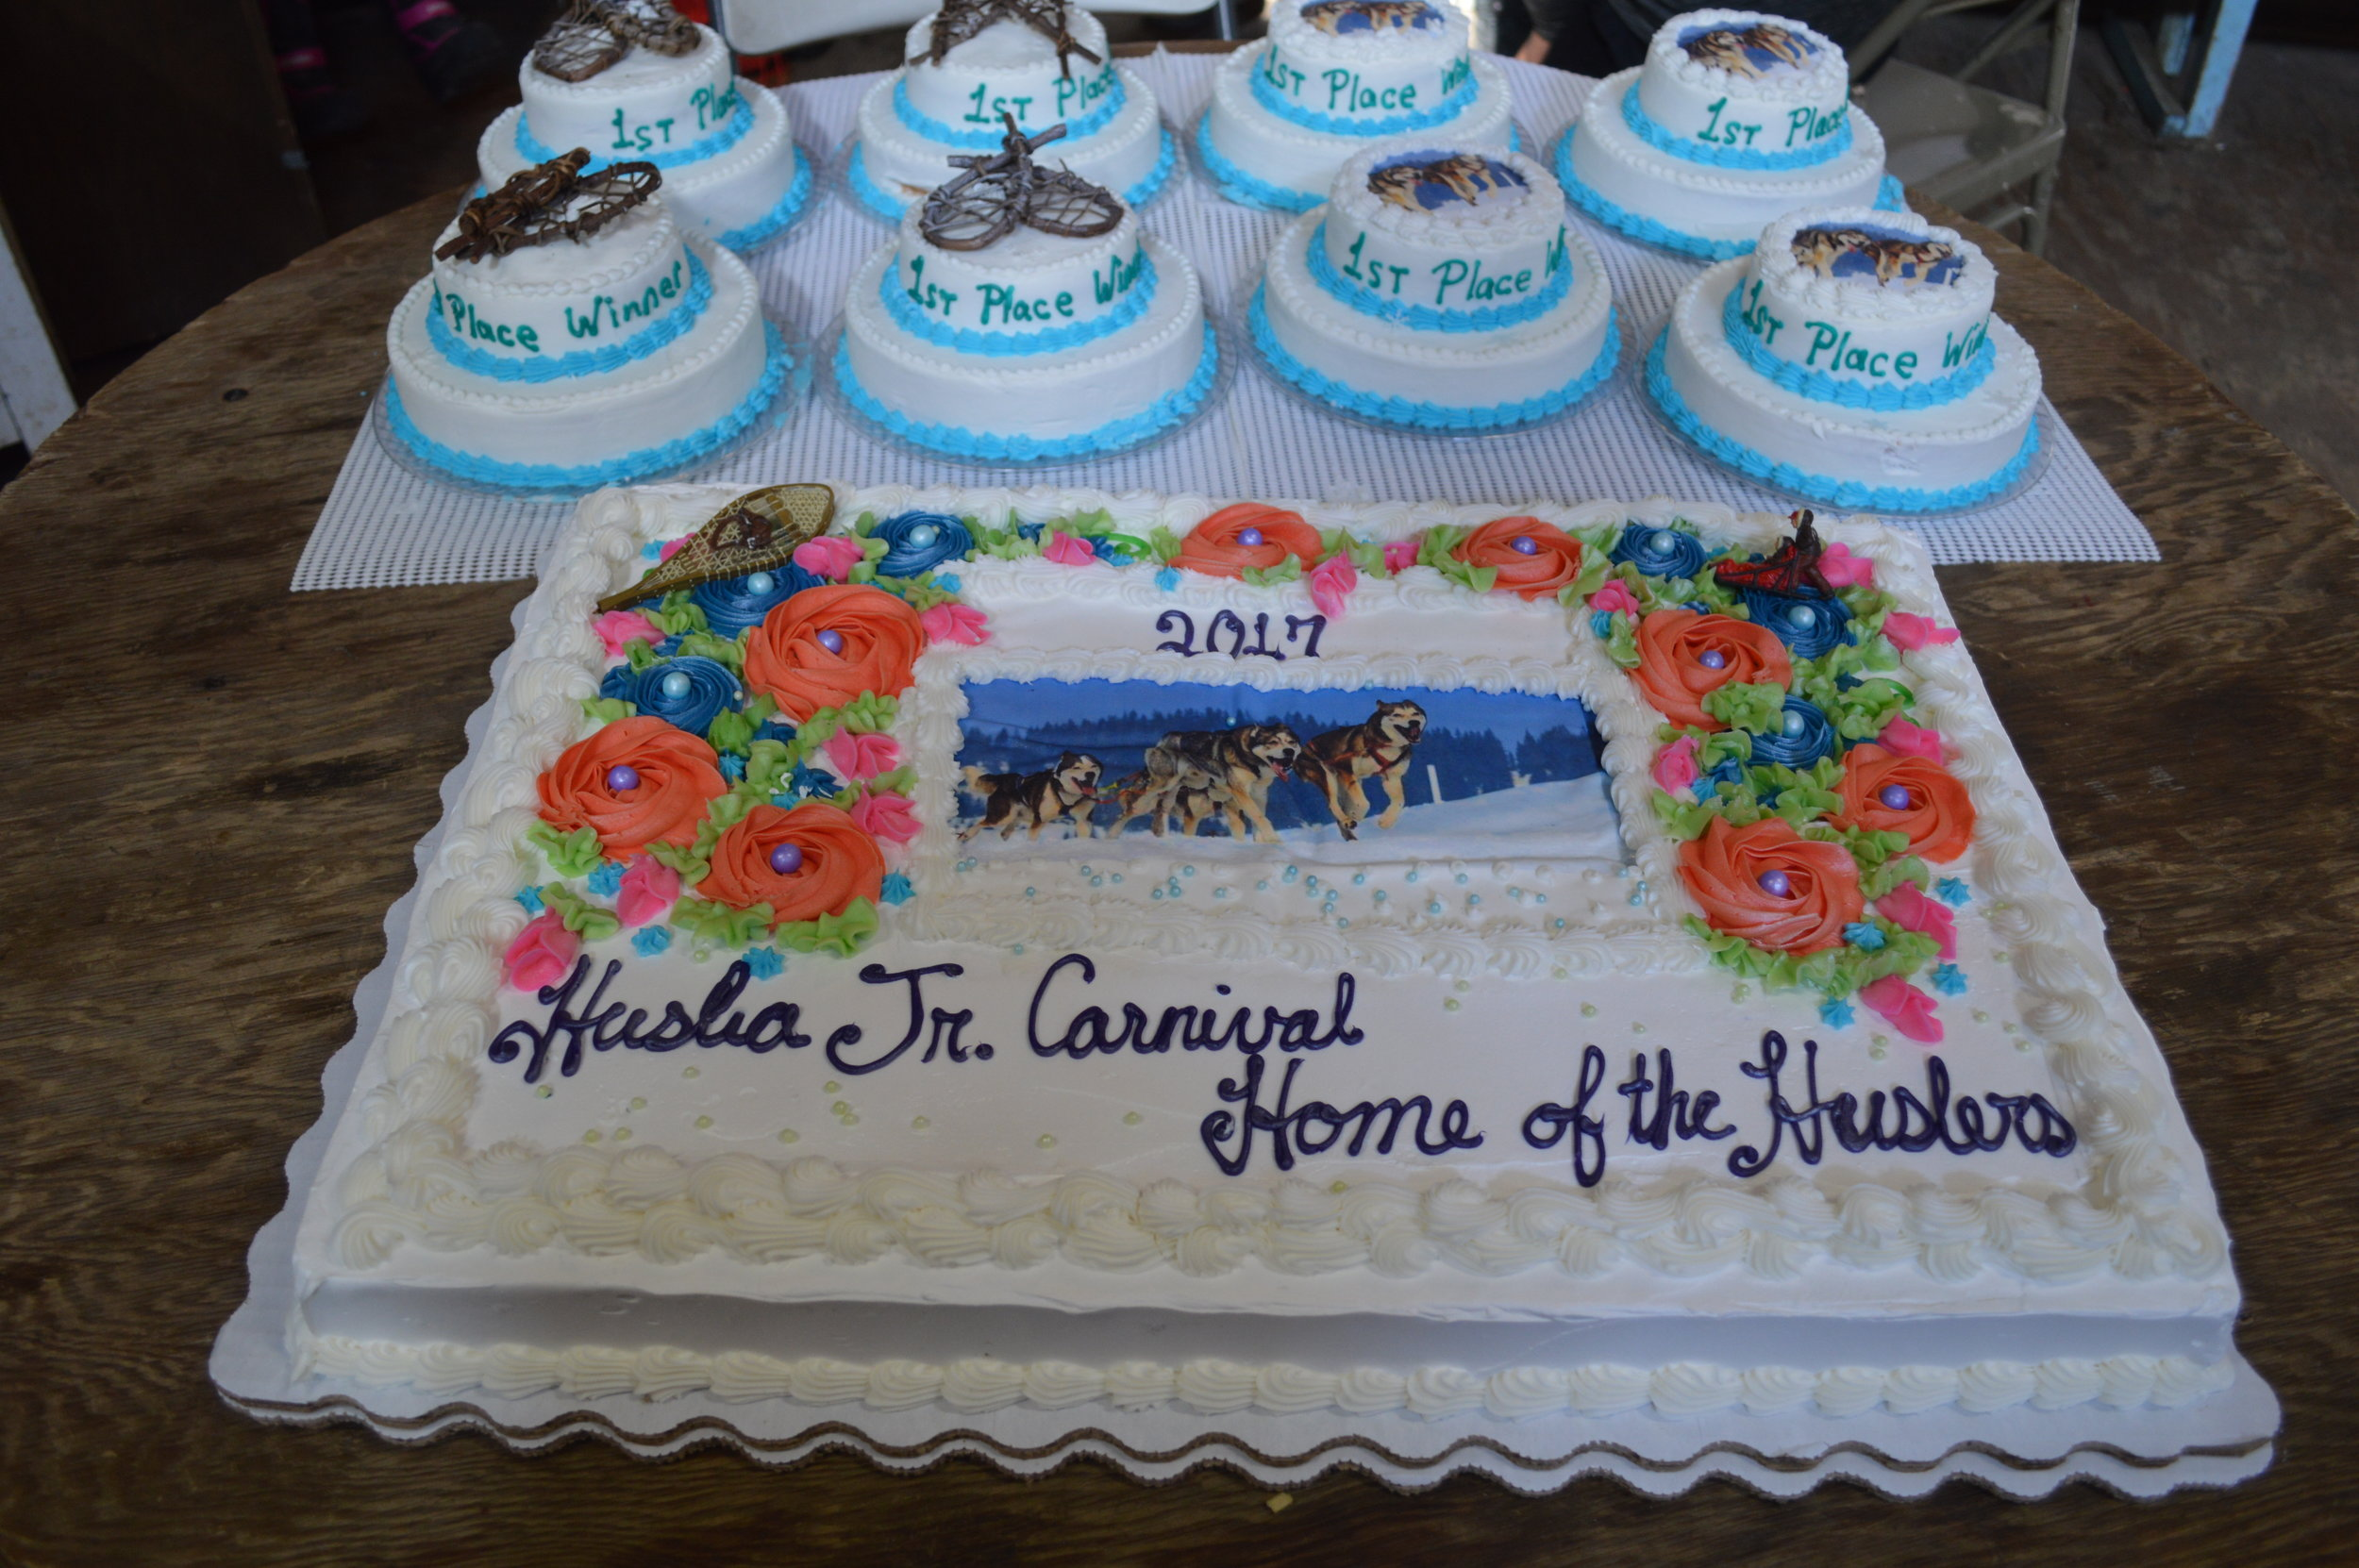 Huslia Jr. Carnival - Community Cake and cakes for 1st Place competition winners .